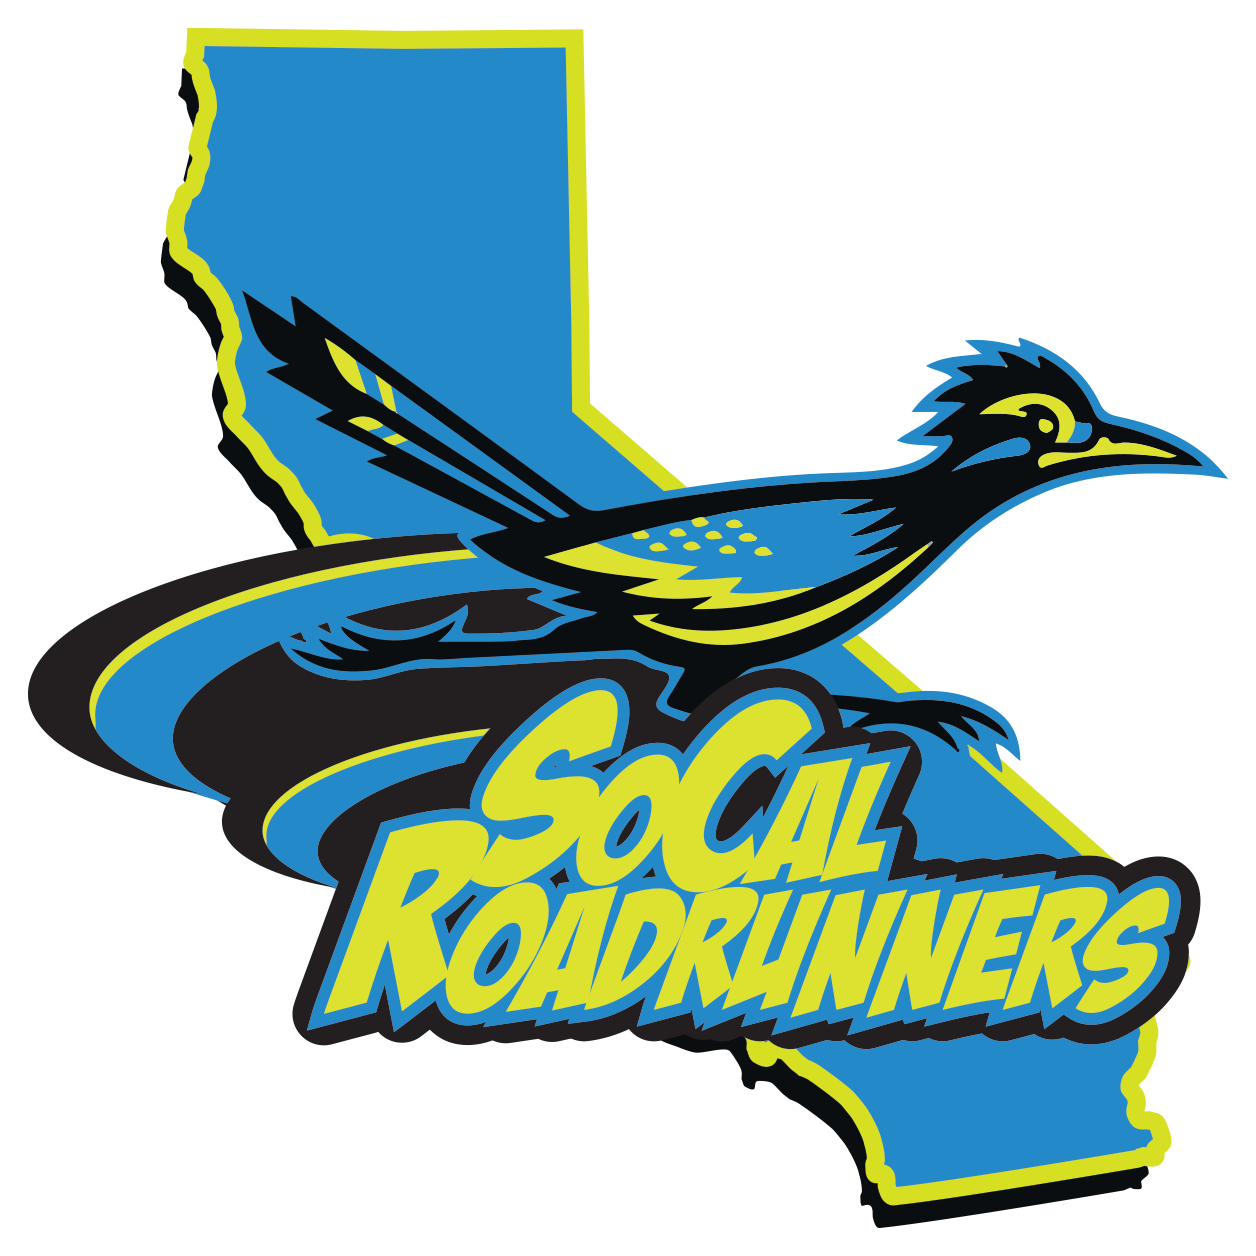 SoCal Roadrunners